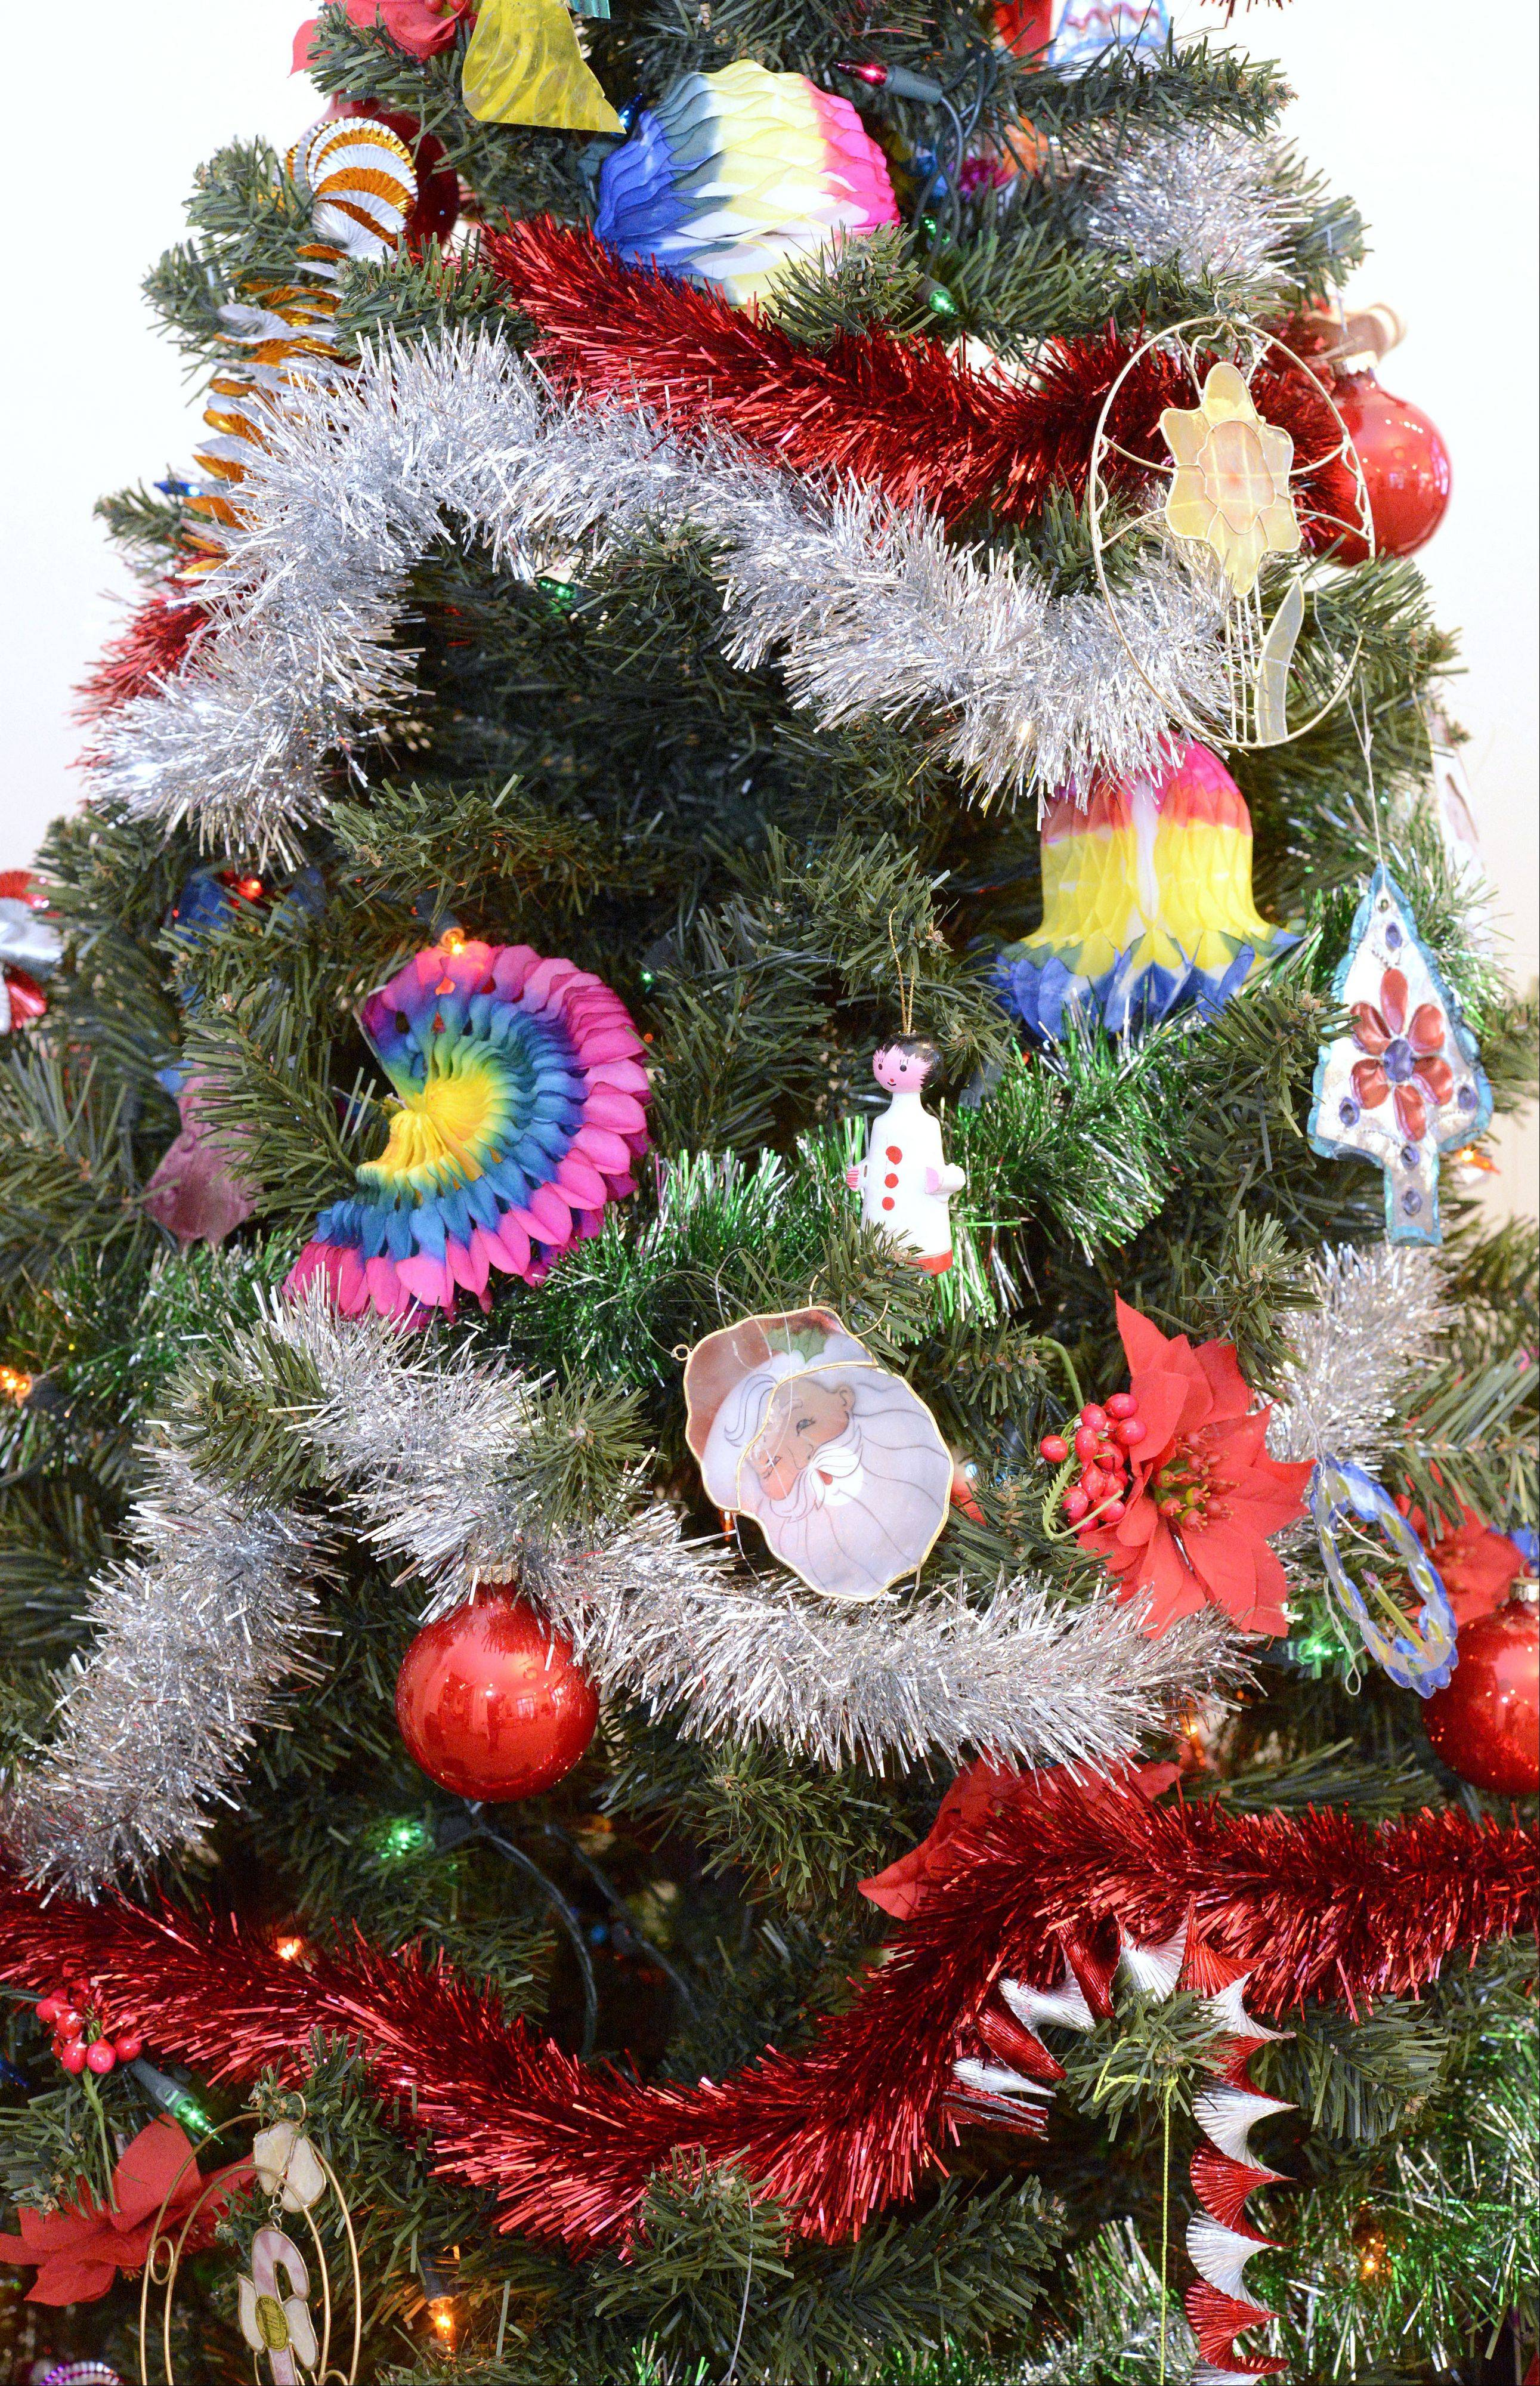 A Mexican Christmas tree in the Touching on Traditions display at the Elgin Public Museum.